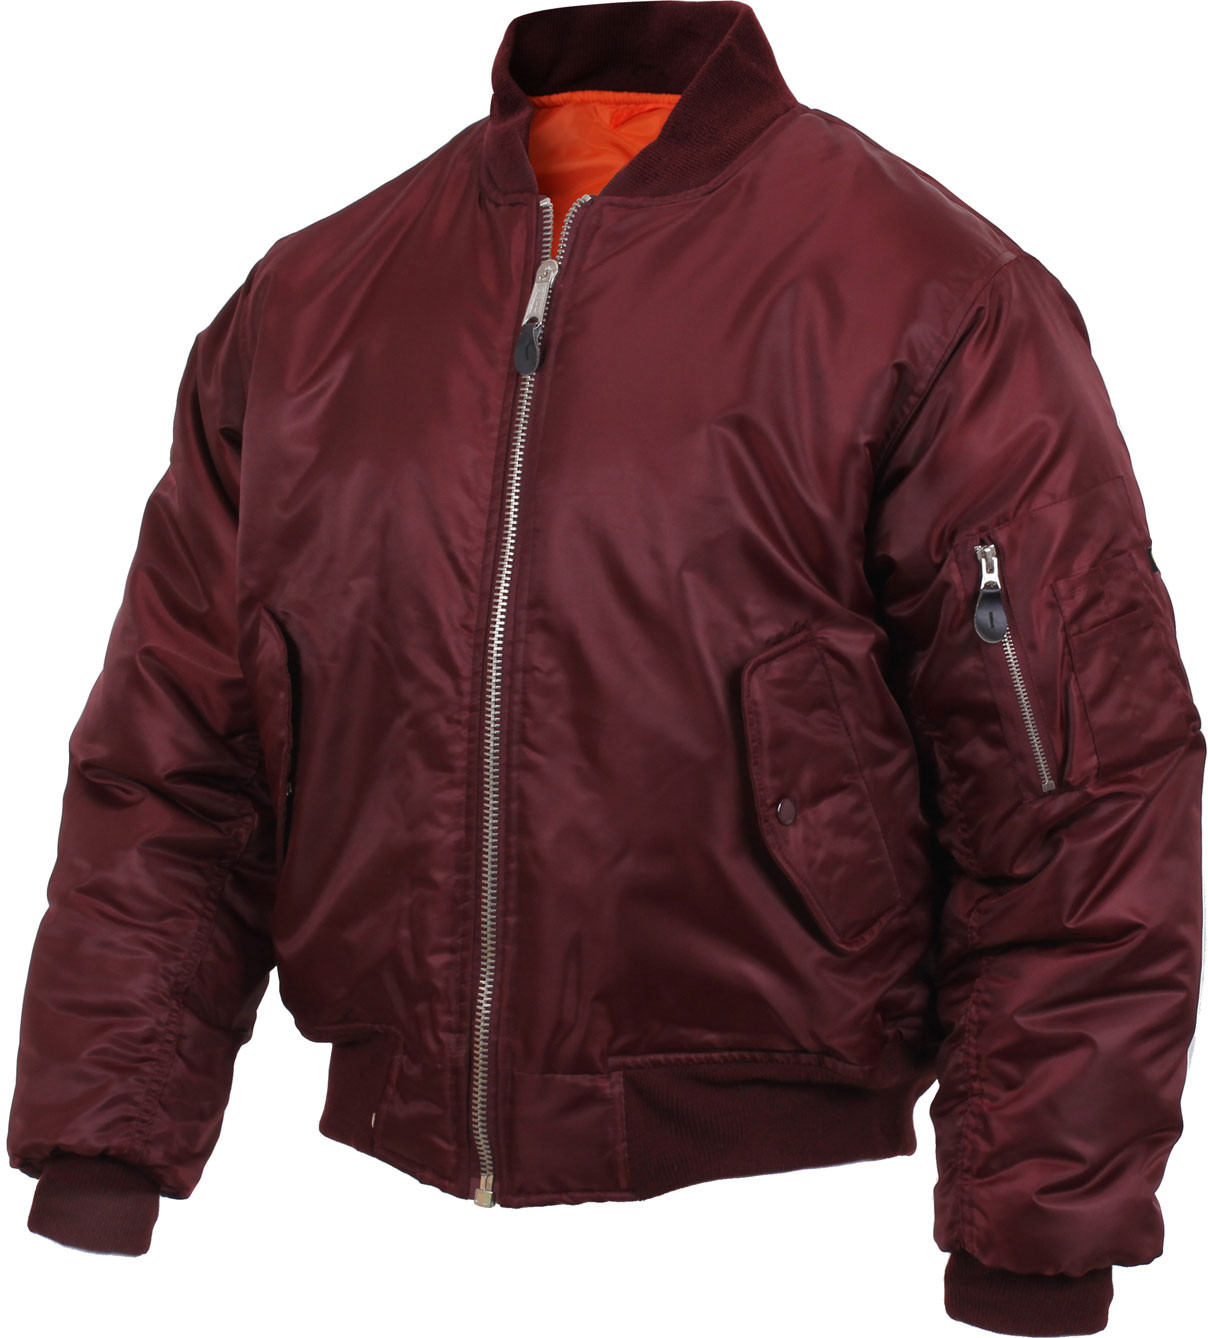 Maroon Military Air Force MA-1 Flight Jacket 247ebafc5b1